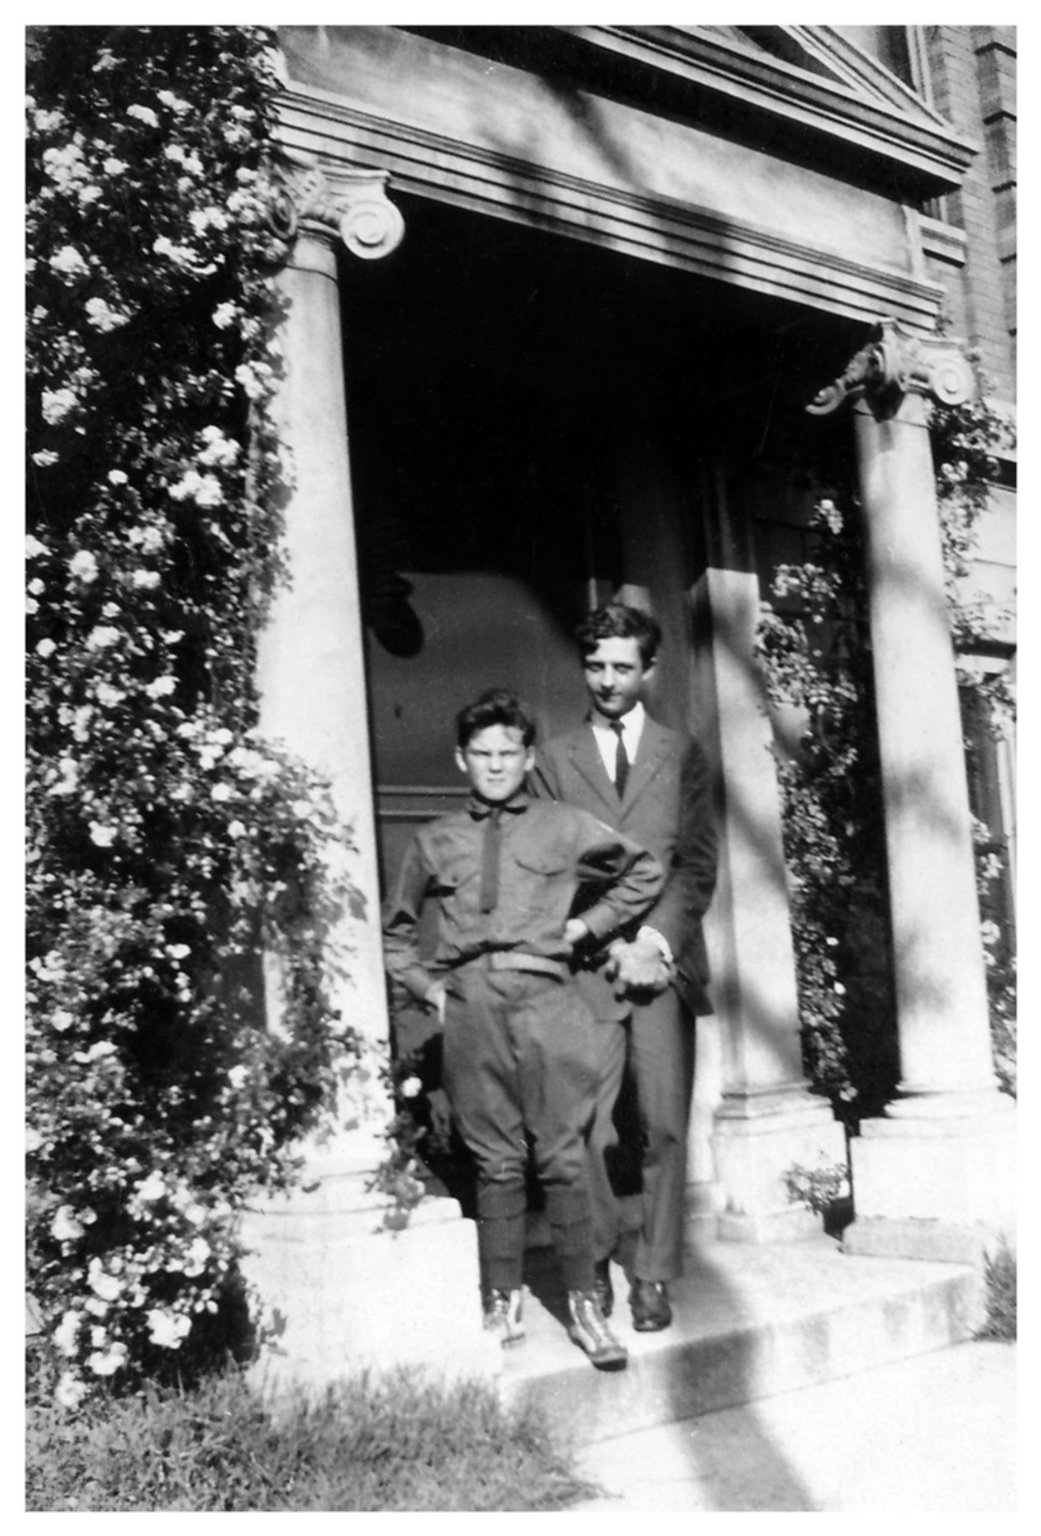 (Untitled) [Hugh and Ralph? By door with flowers]